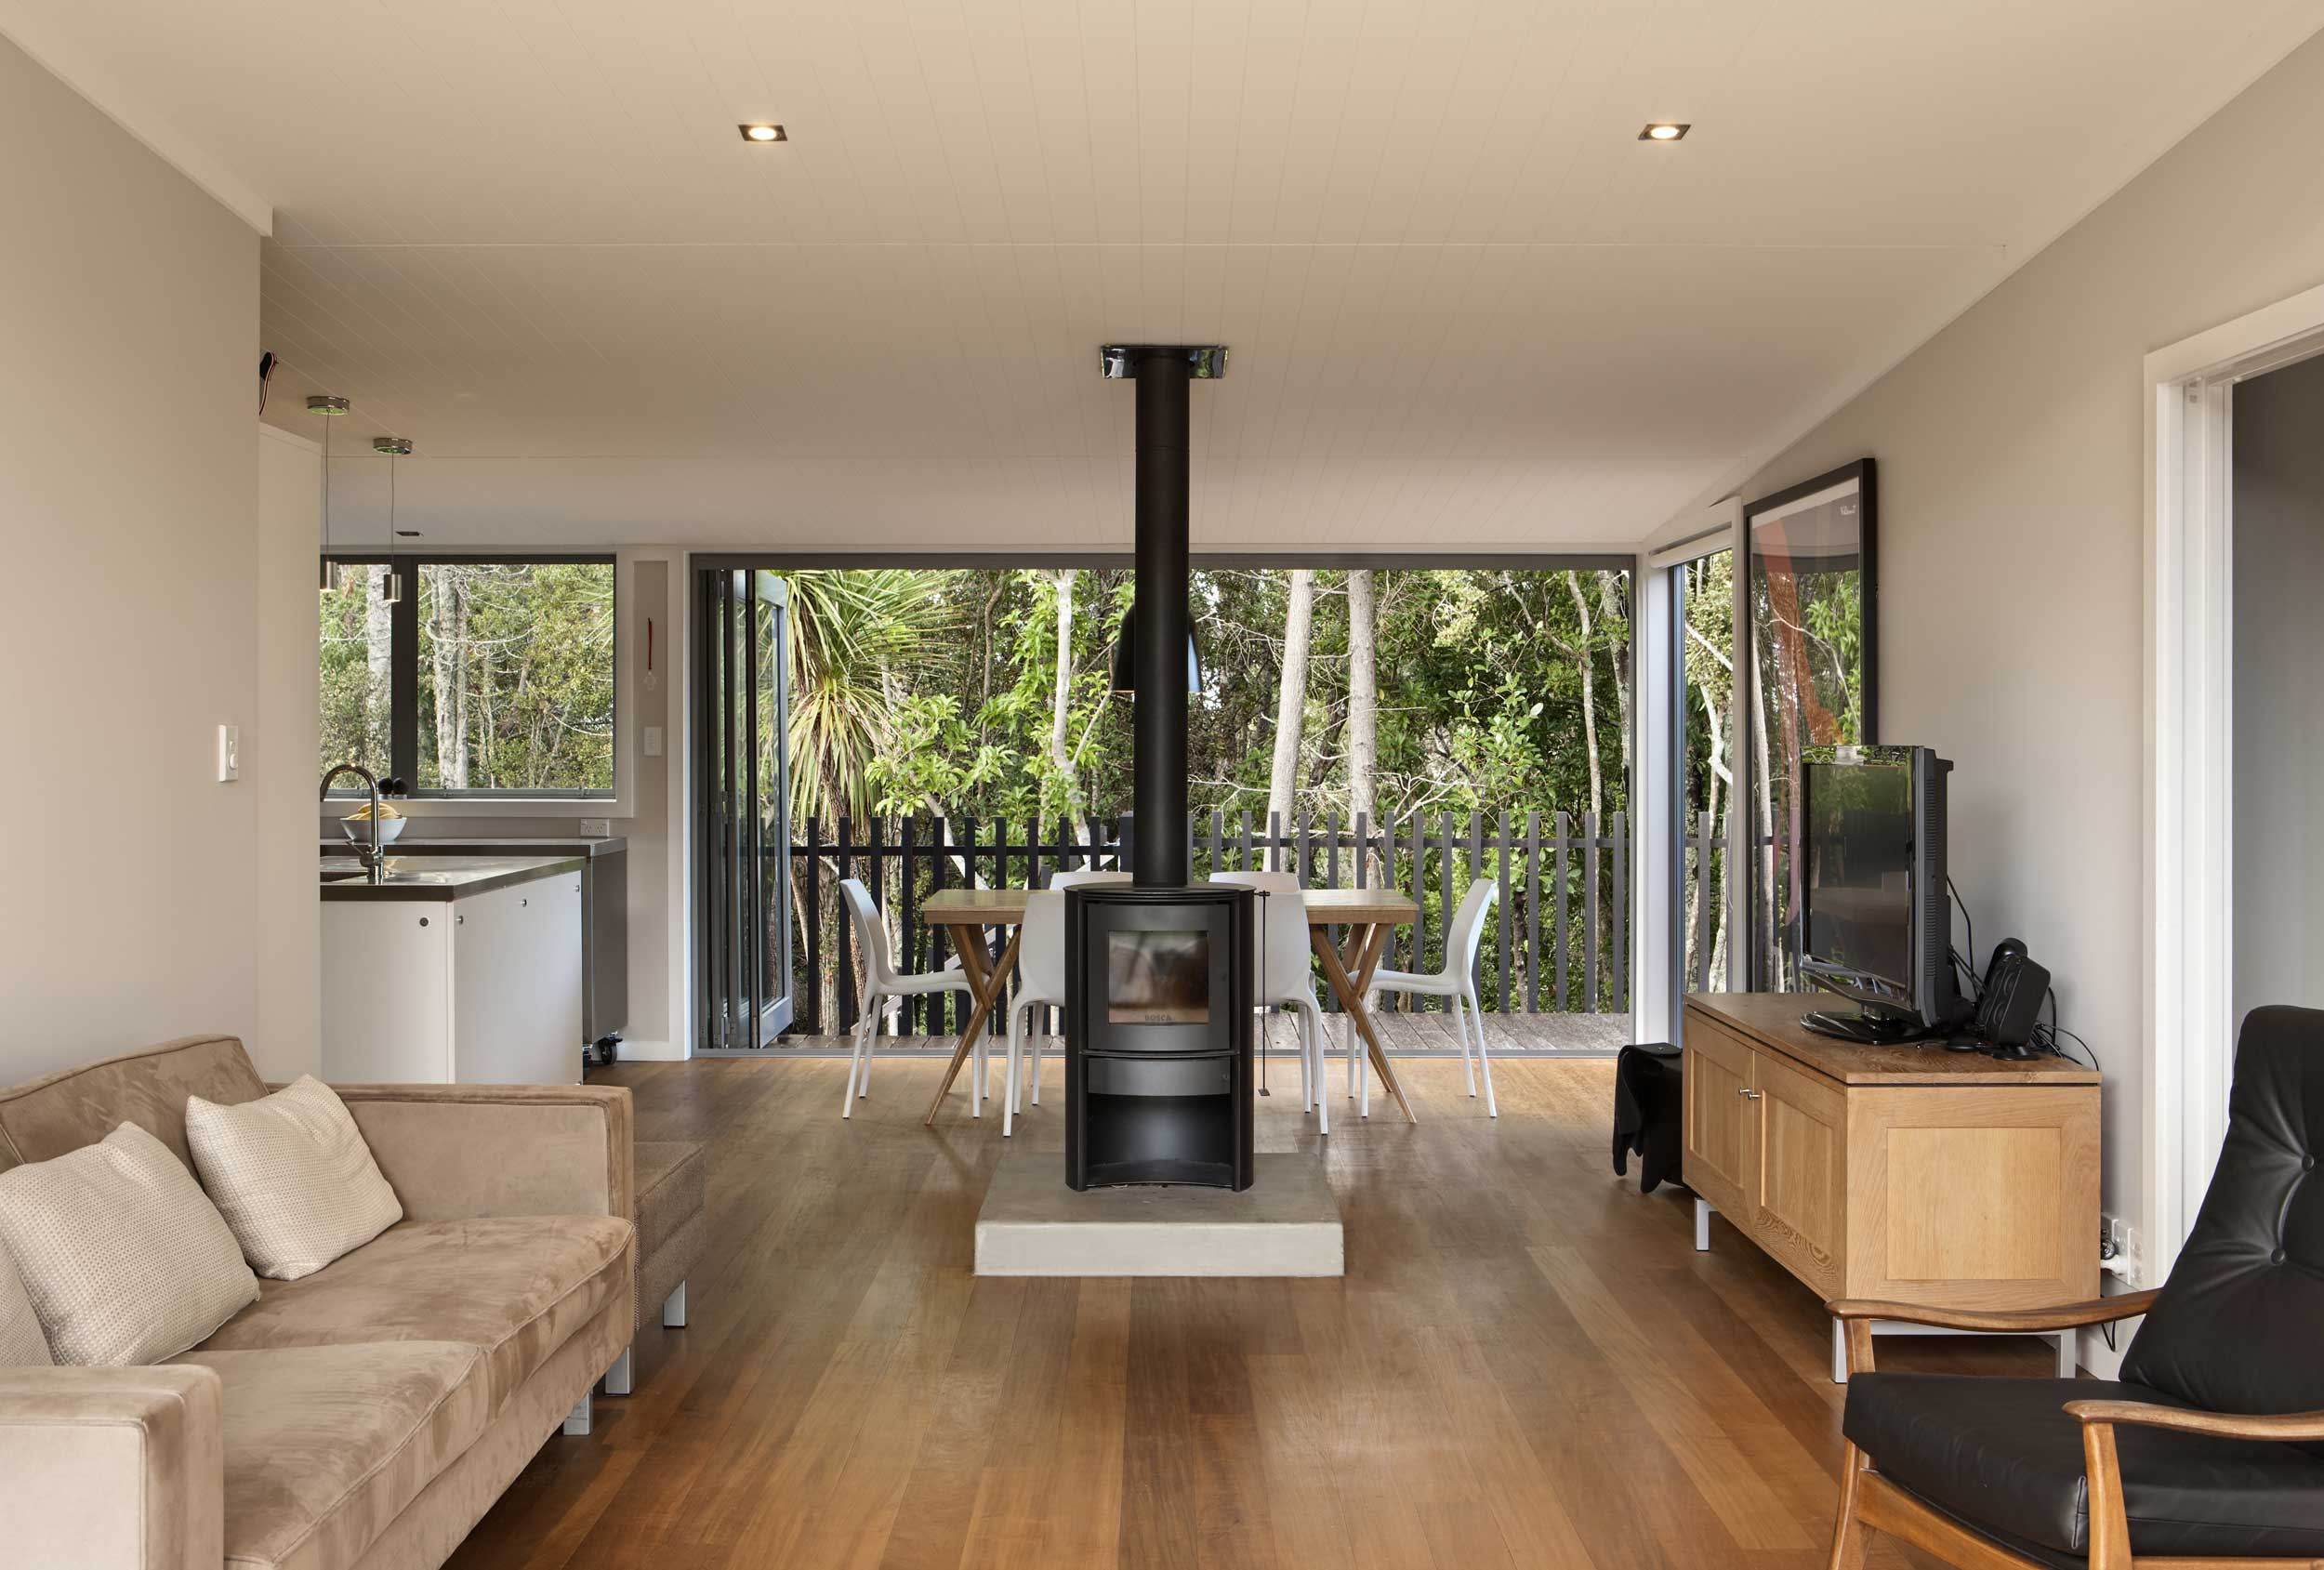 North shore architect house fireplace timber floors